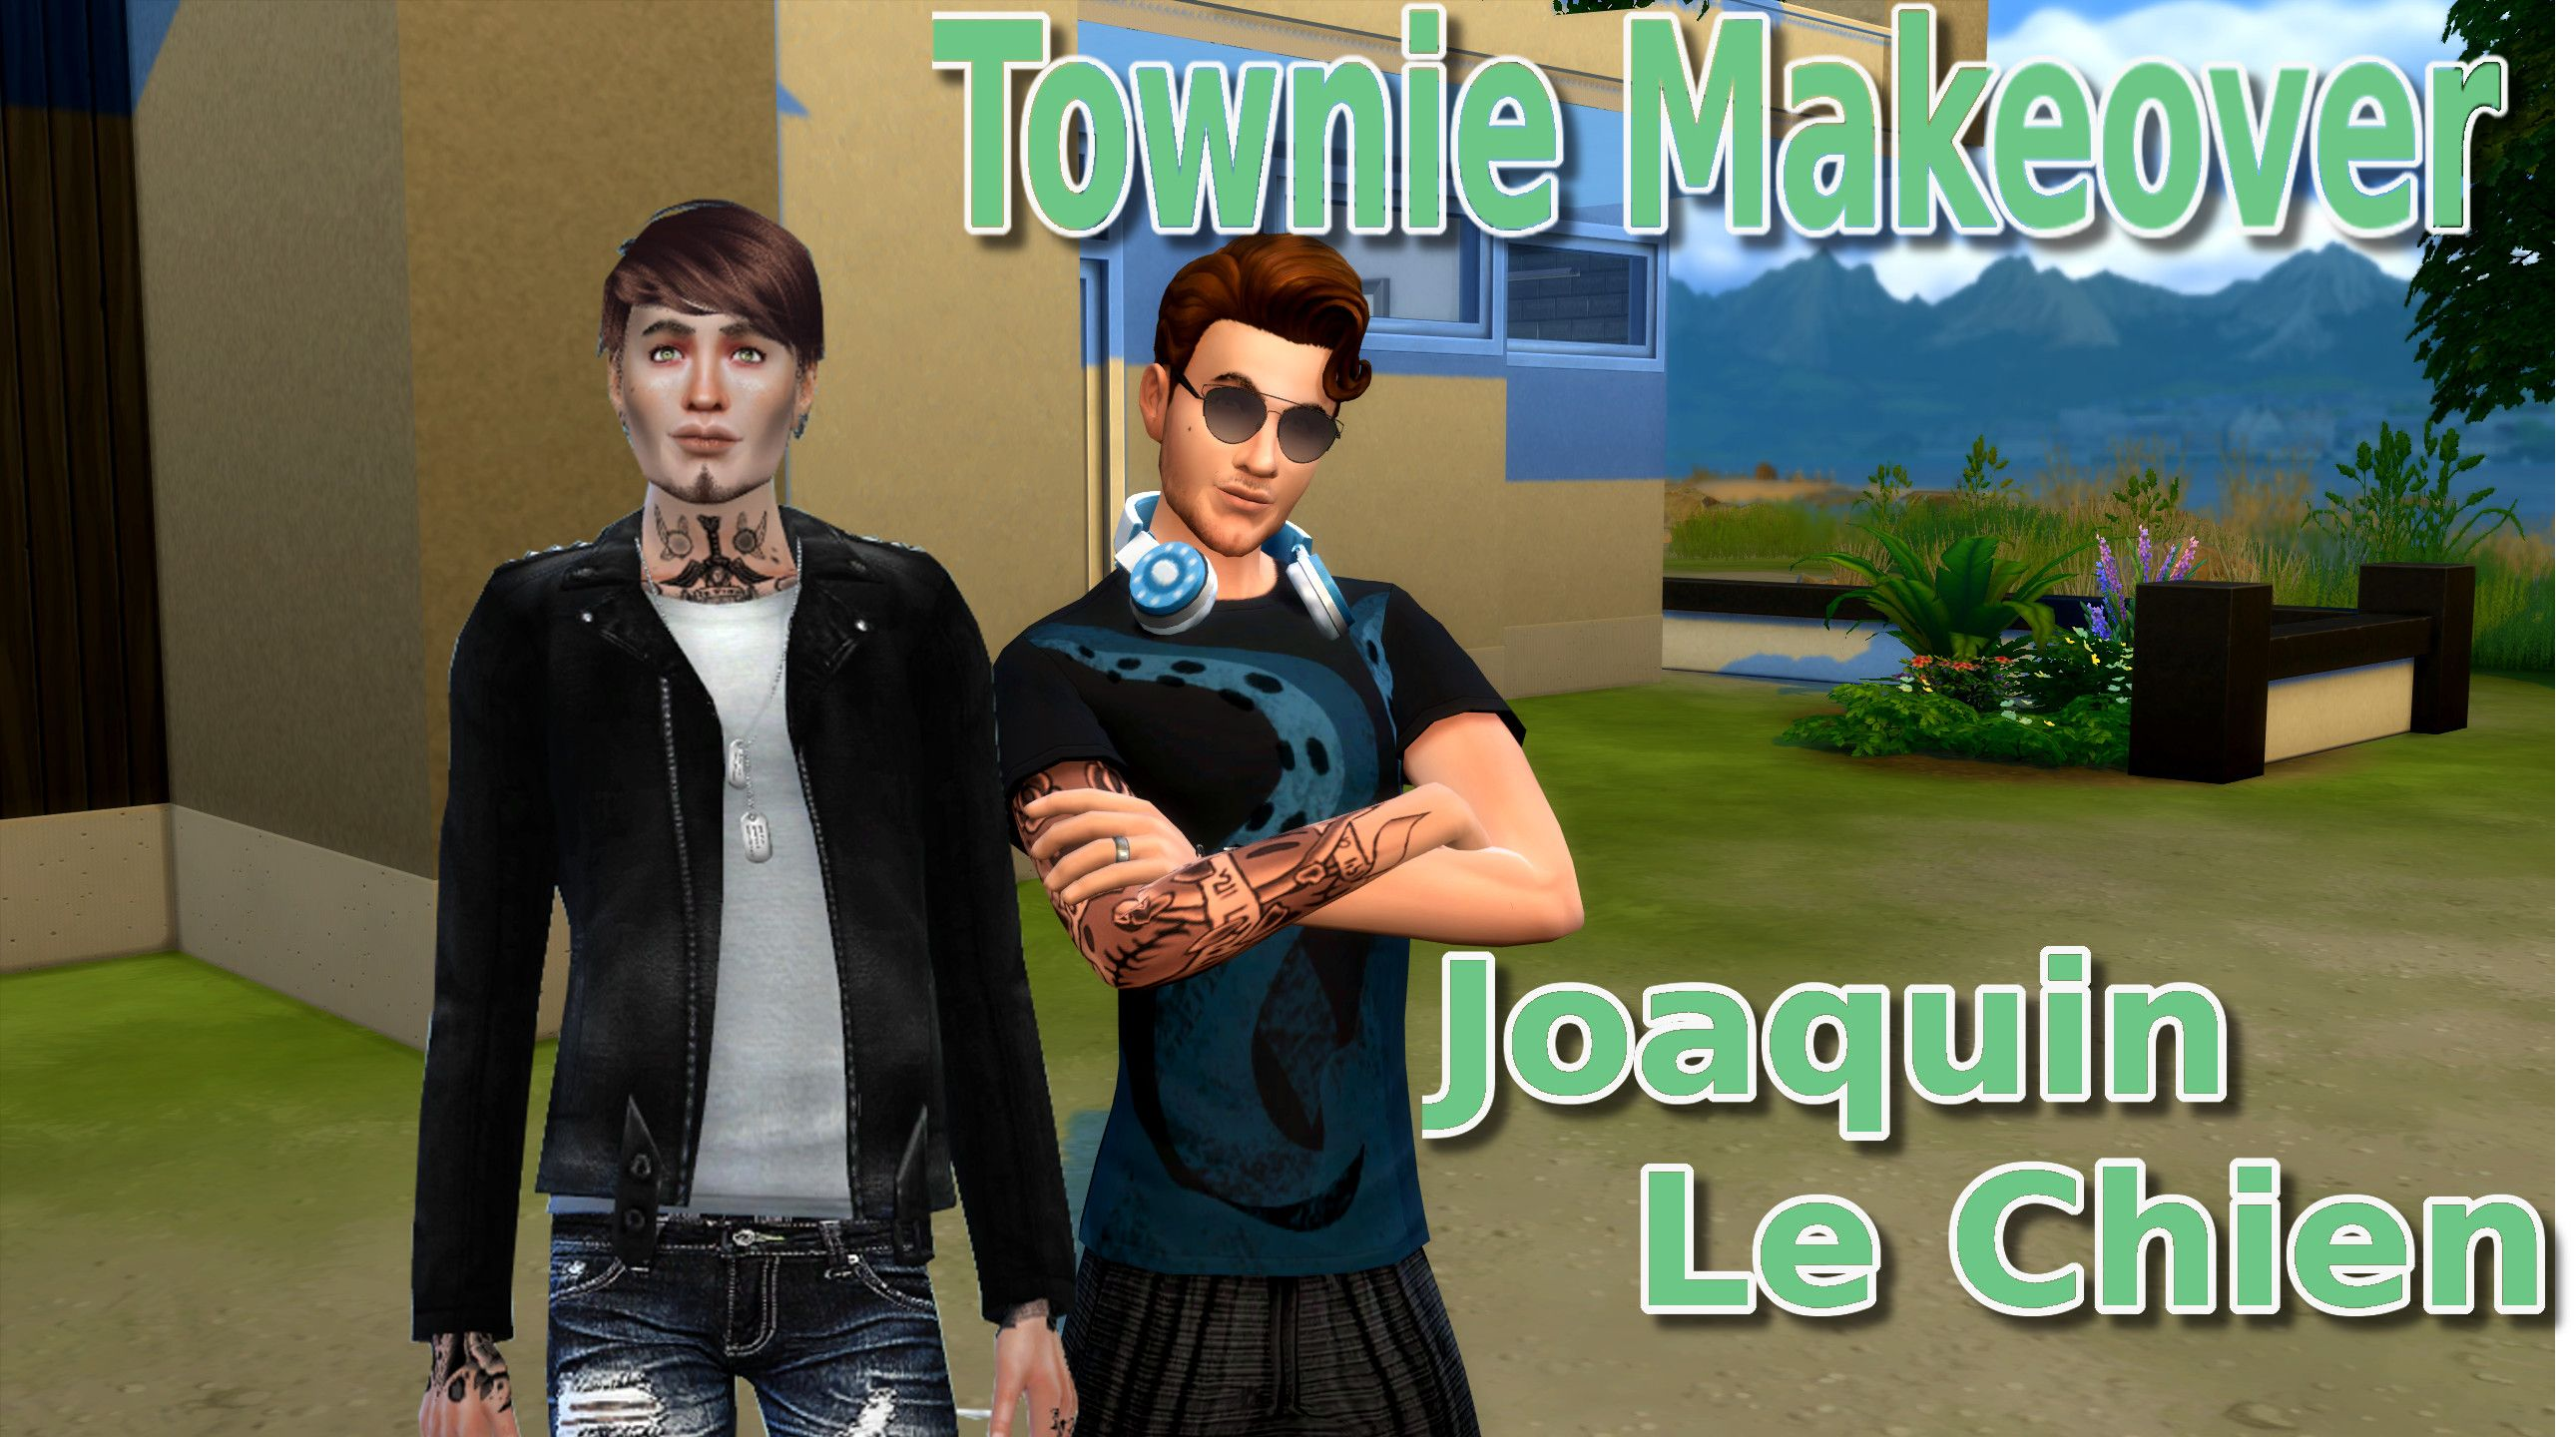 A new townie makeover from Windenburg is online  Check out